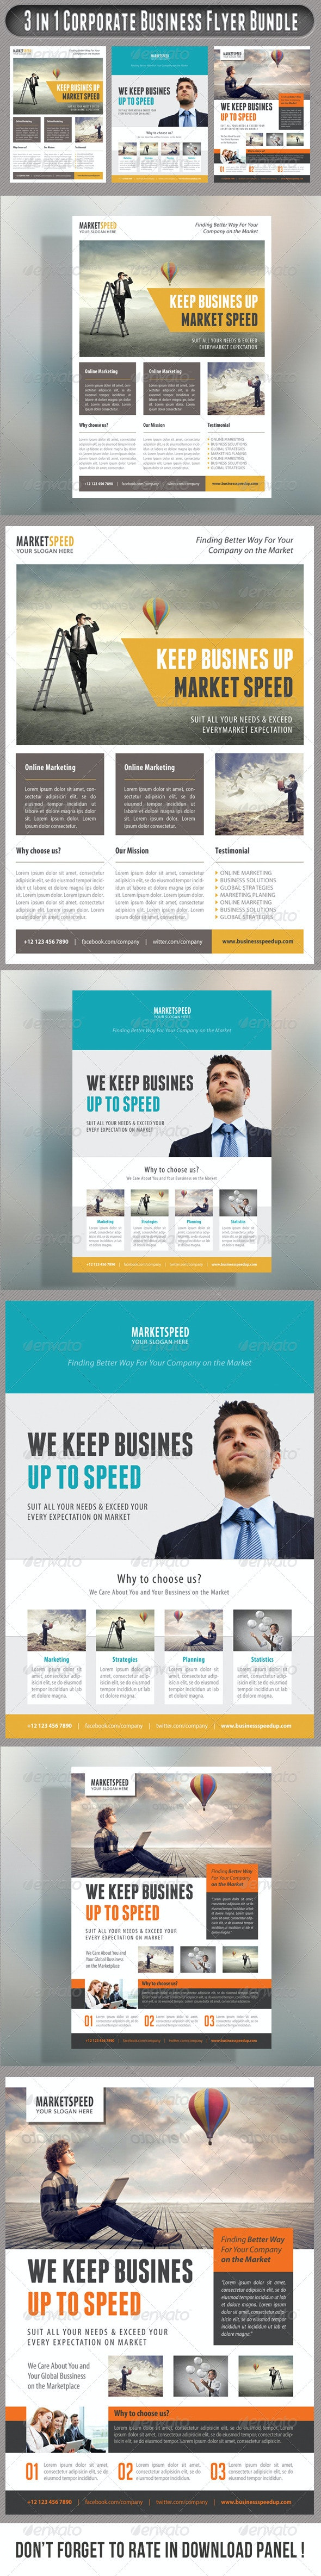 3 in 1 Corporate Flyers Bundle 21 - Corporate Flyers